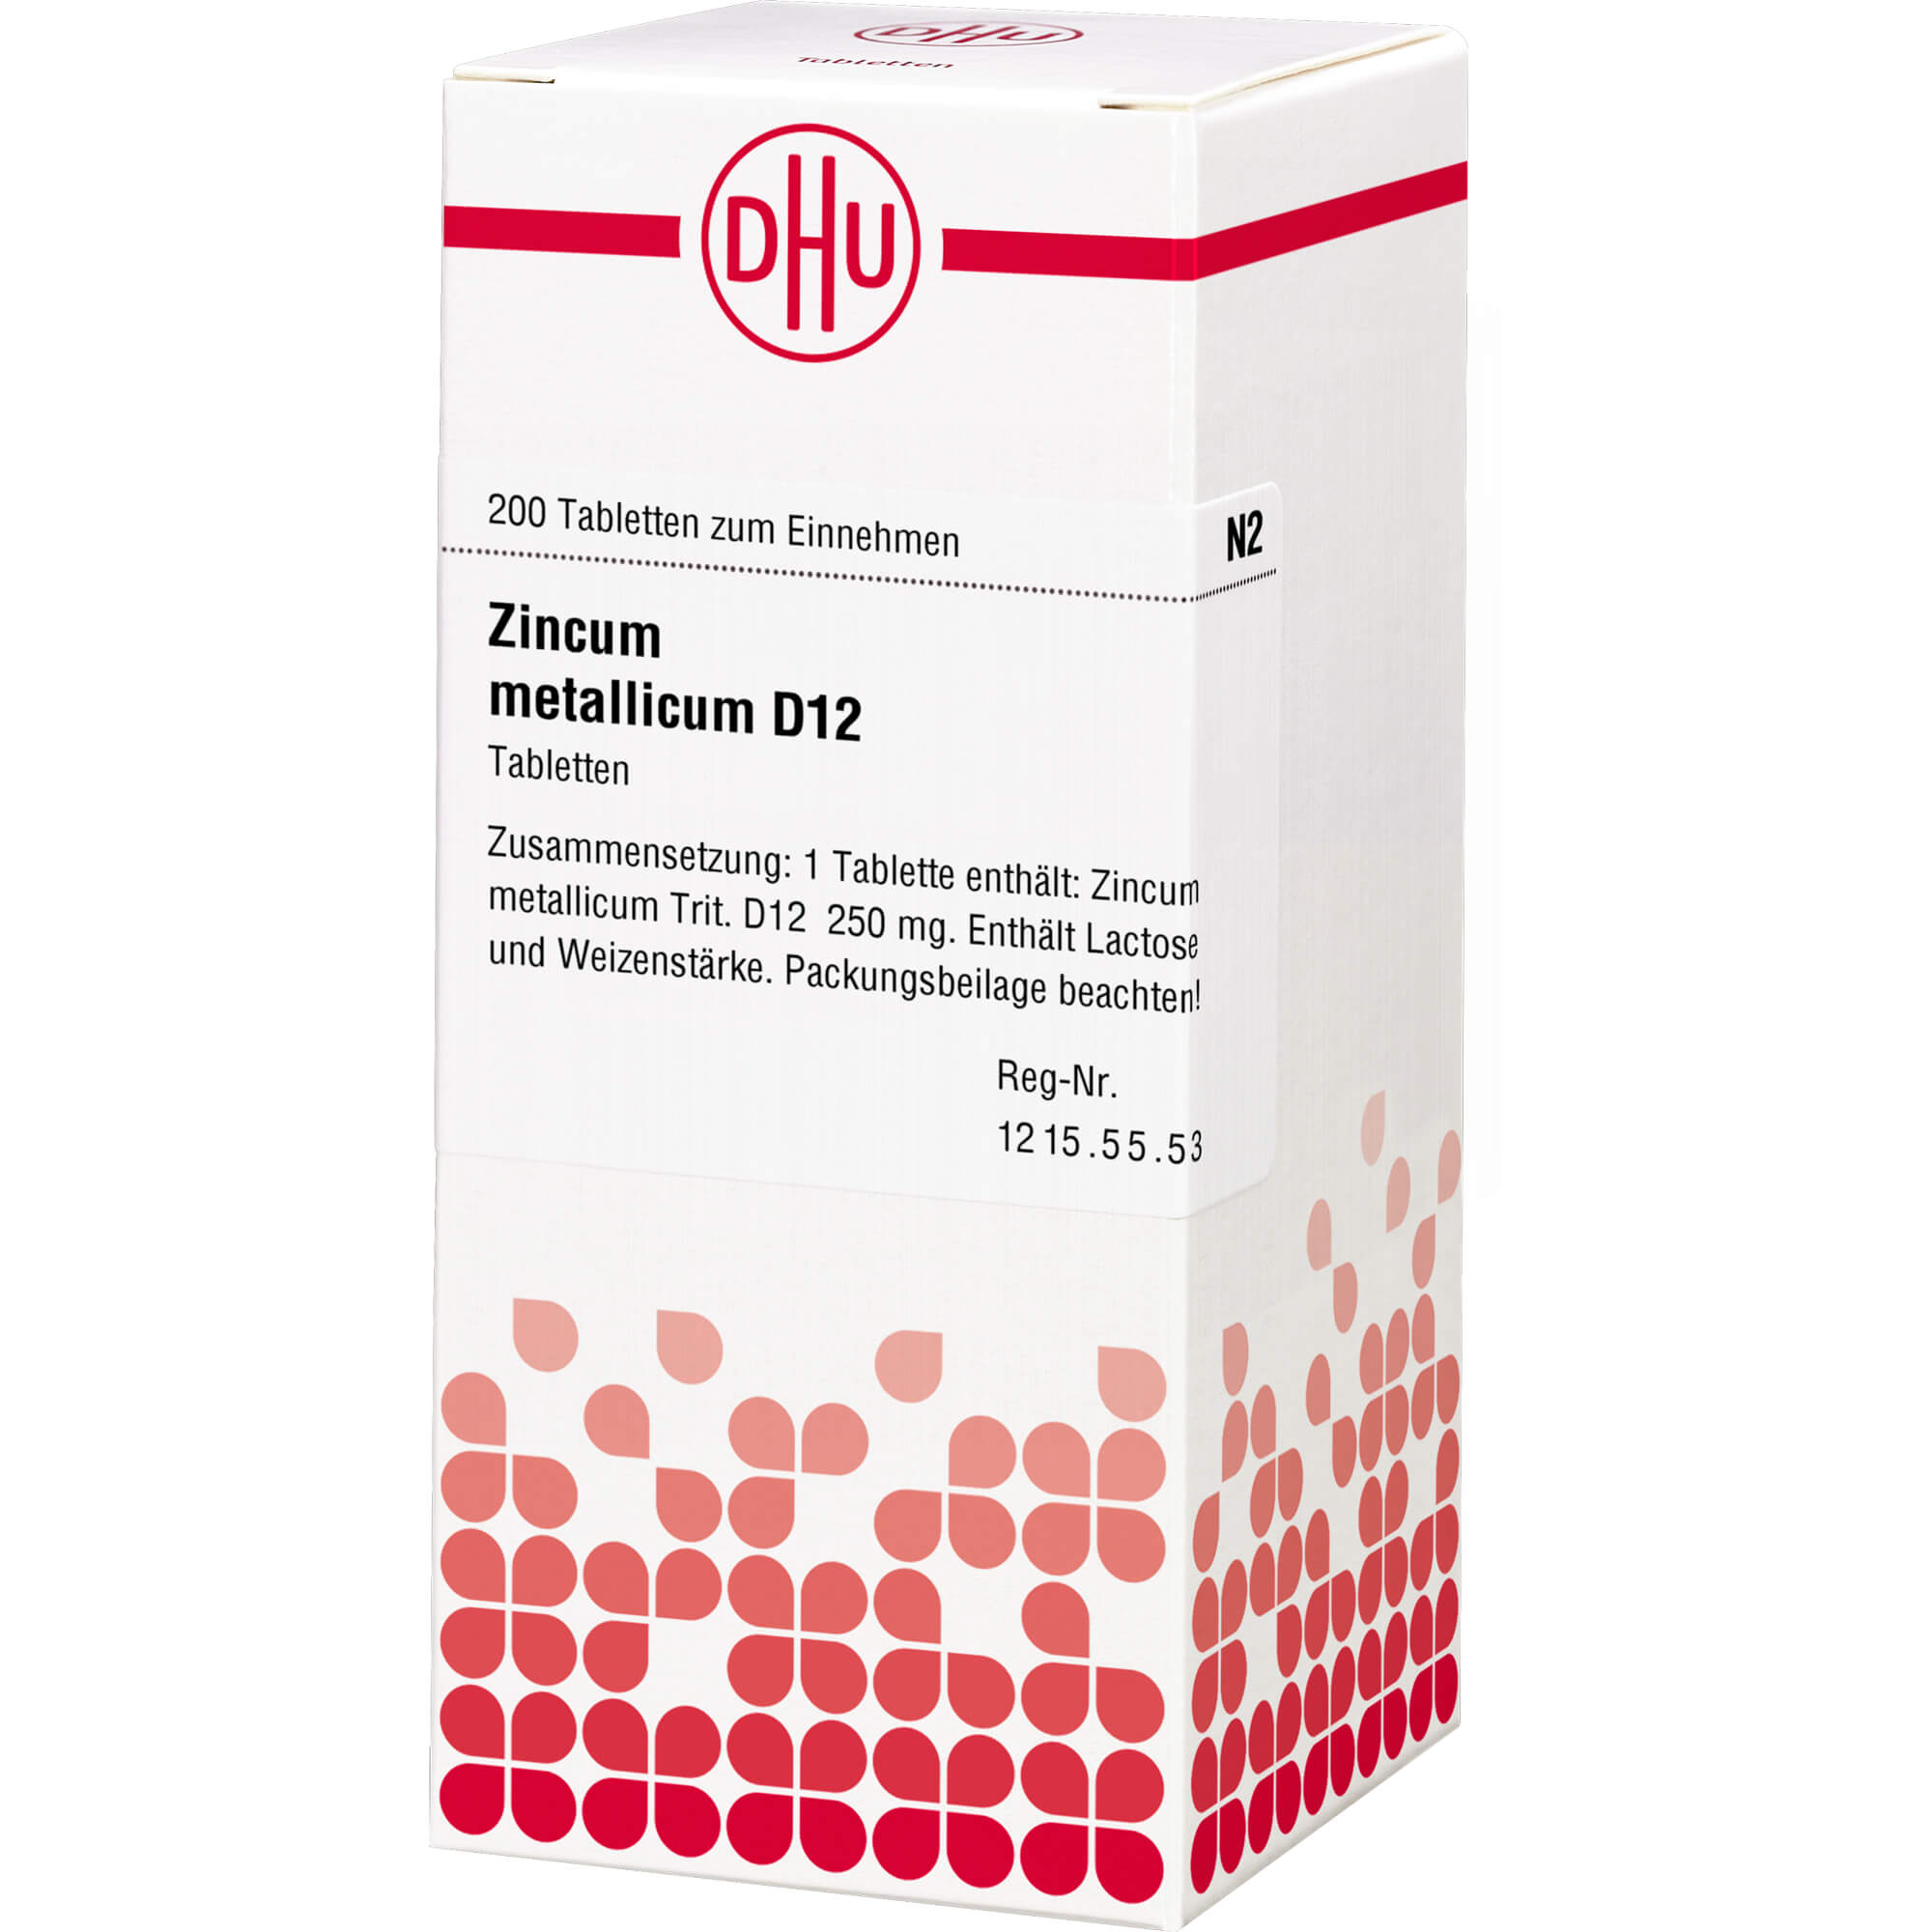 ZINCUM METALLICUM D 12 Tabletten